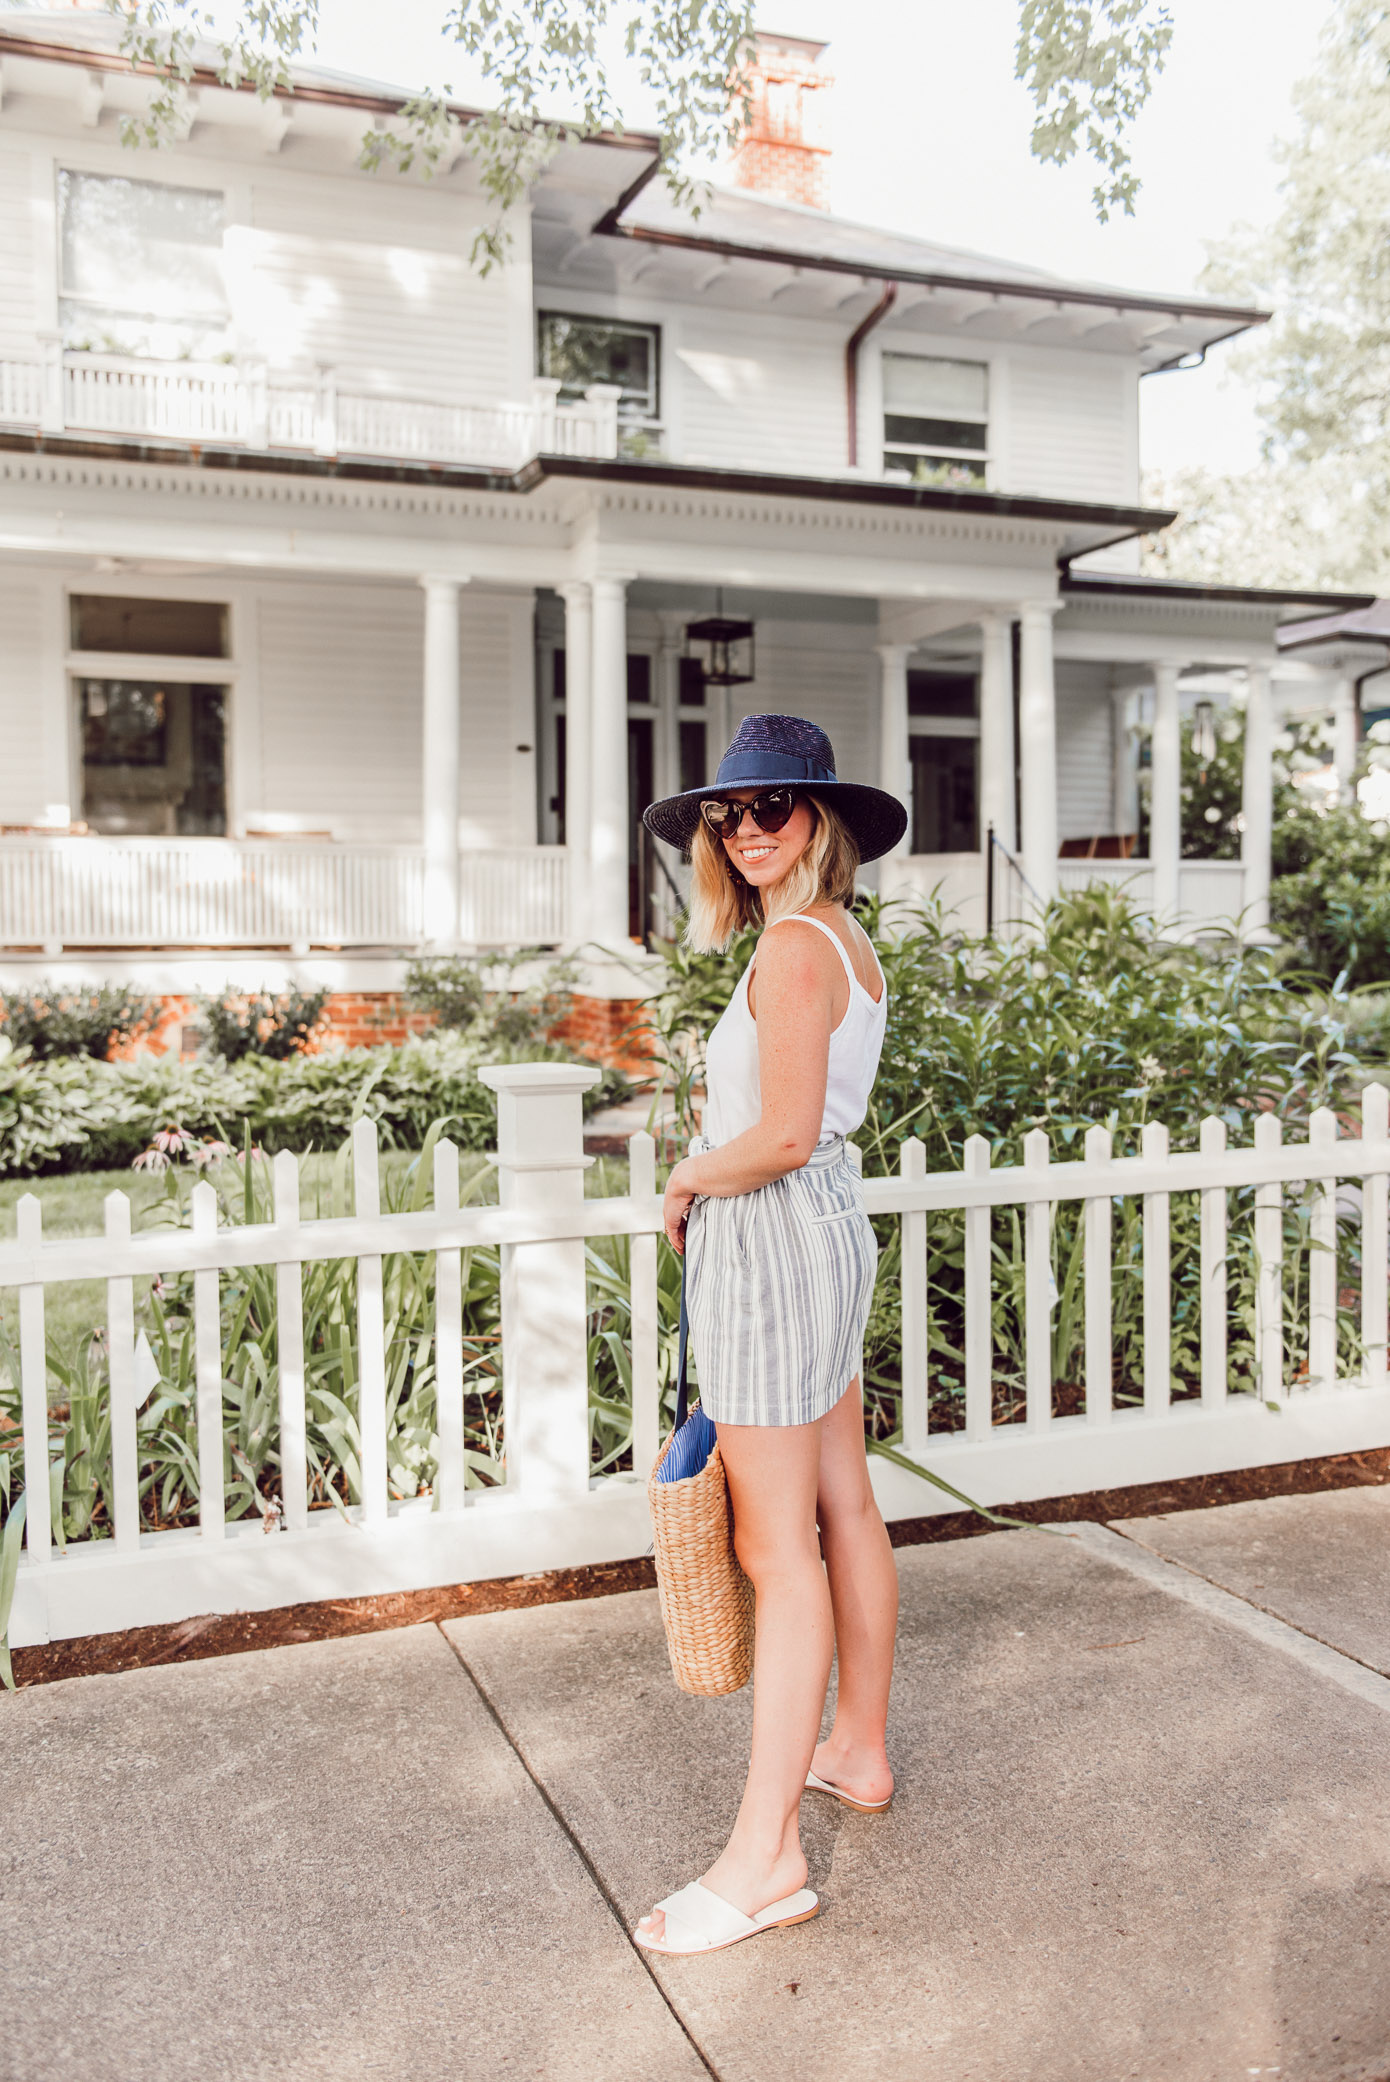 Casual Summer Outfit Idea   Cotton Cami, Linen Striped Skirt, Navy Straw Hat under $50   Louella Reese